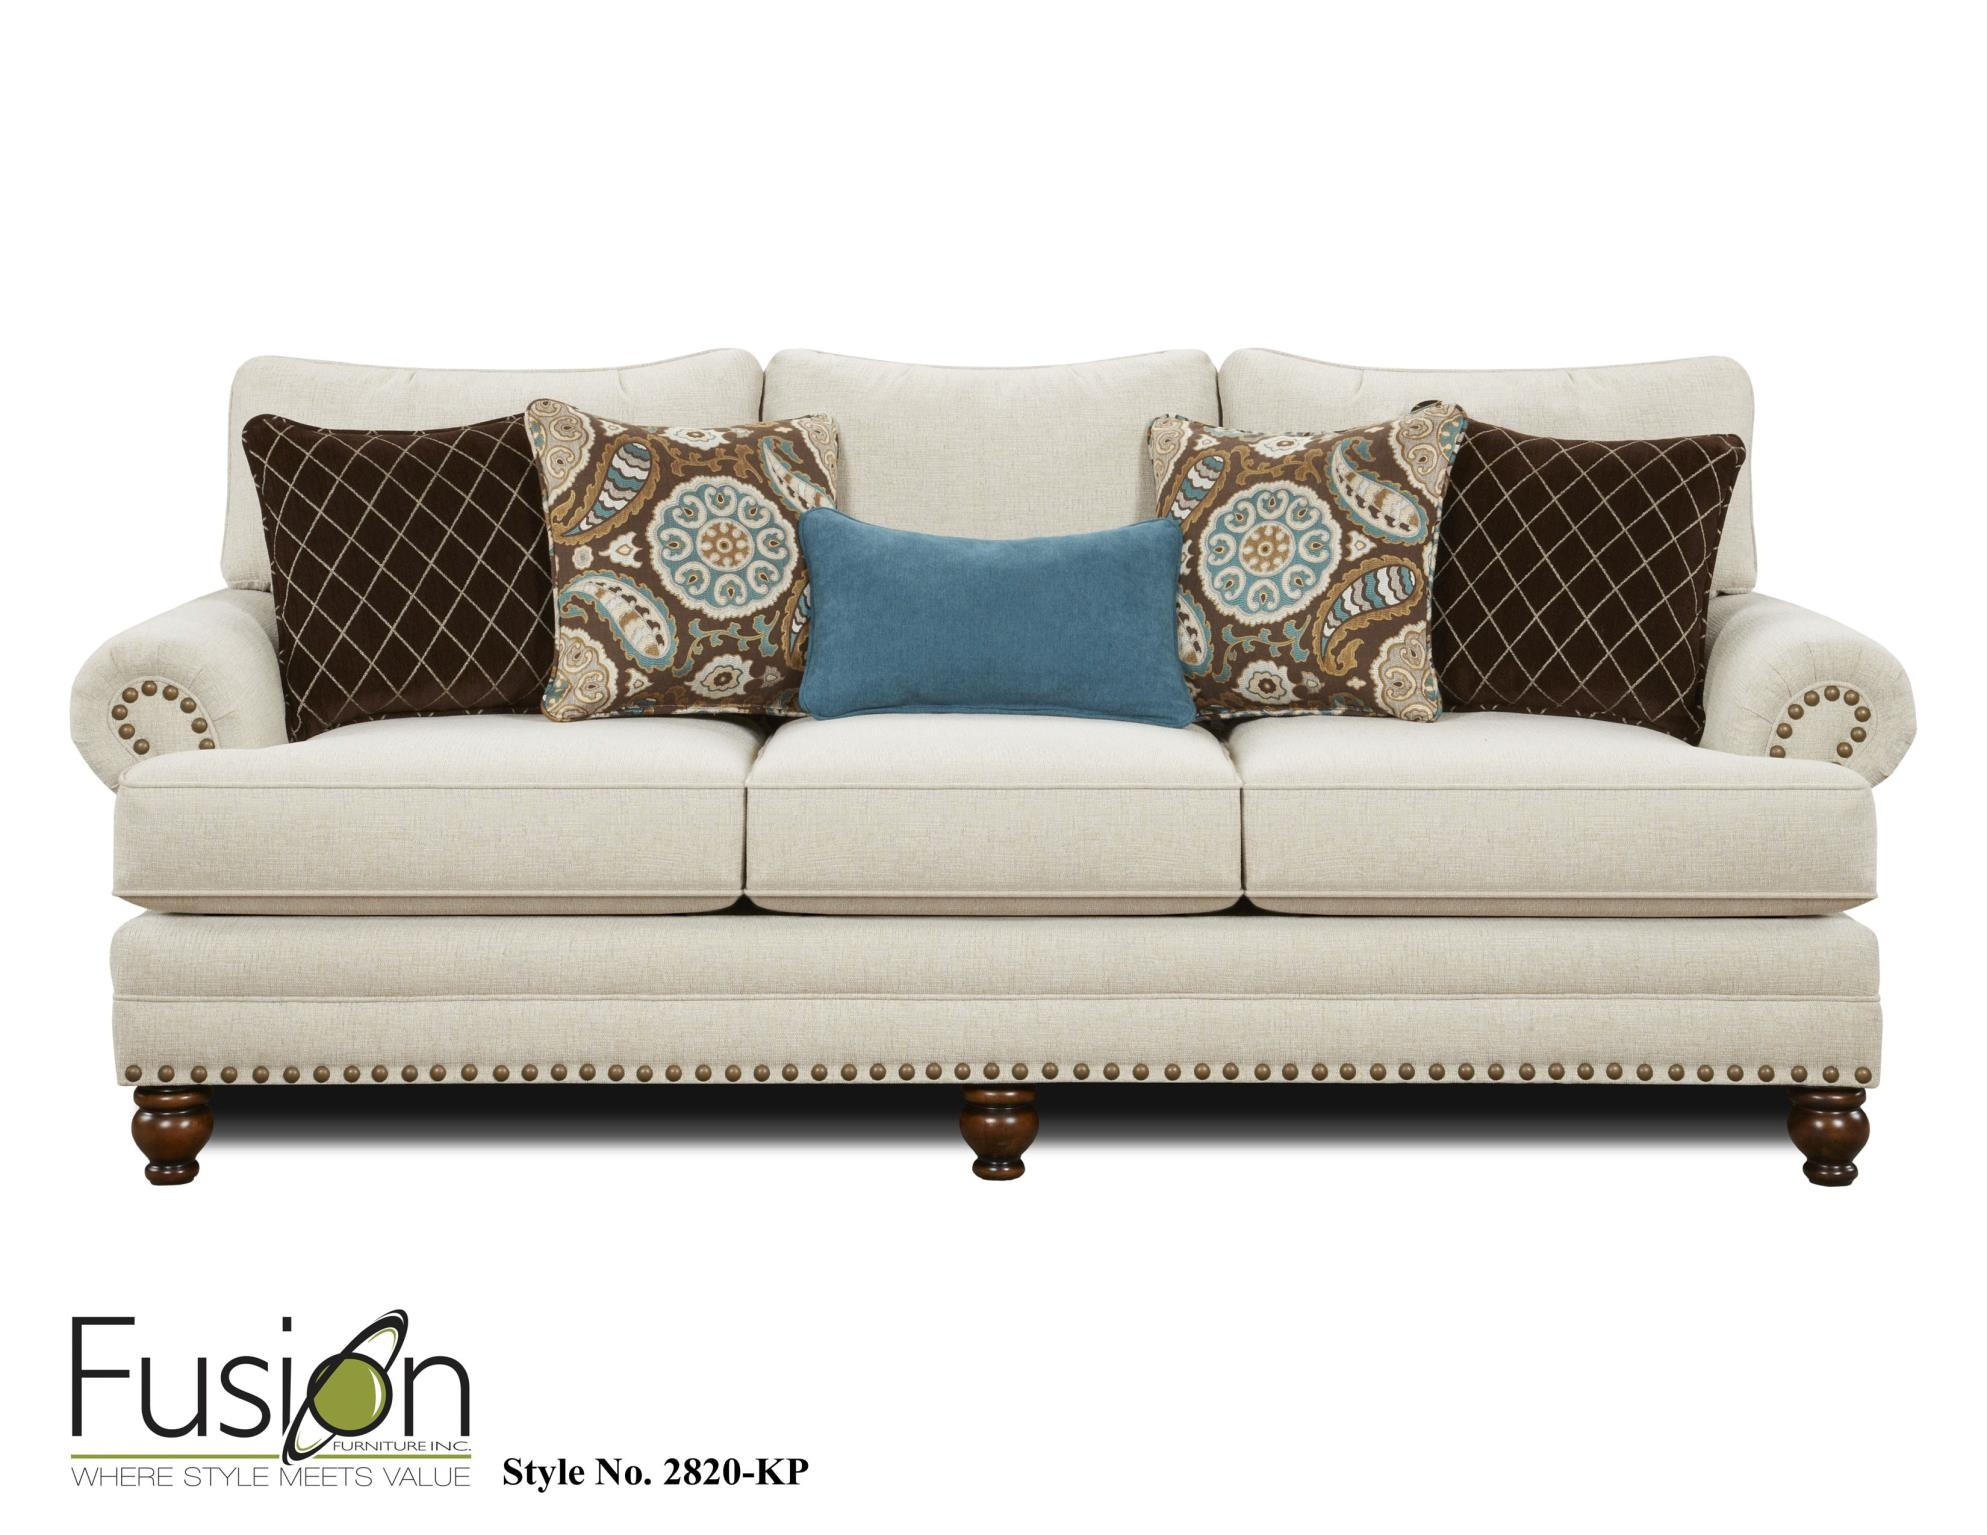 Fusion living room the 2820 kp anna white linen summit for Gallery furniture